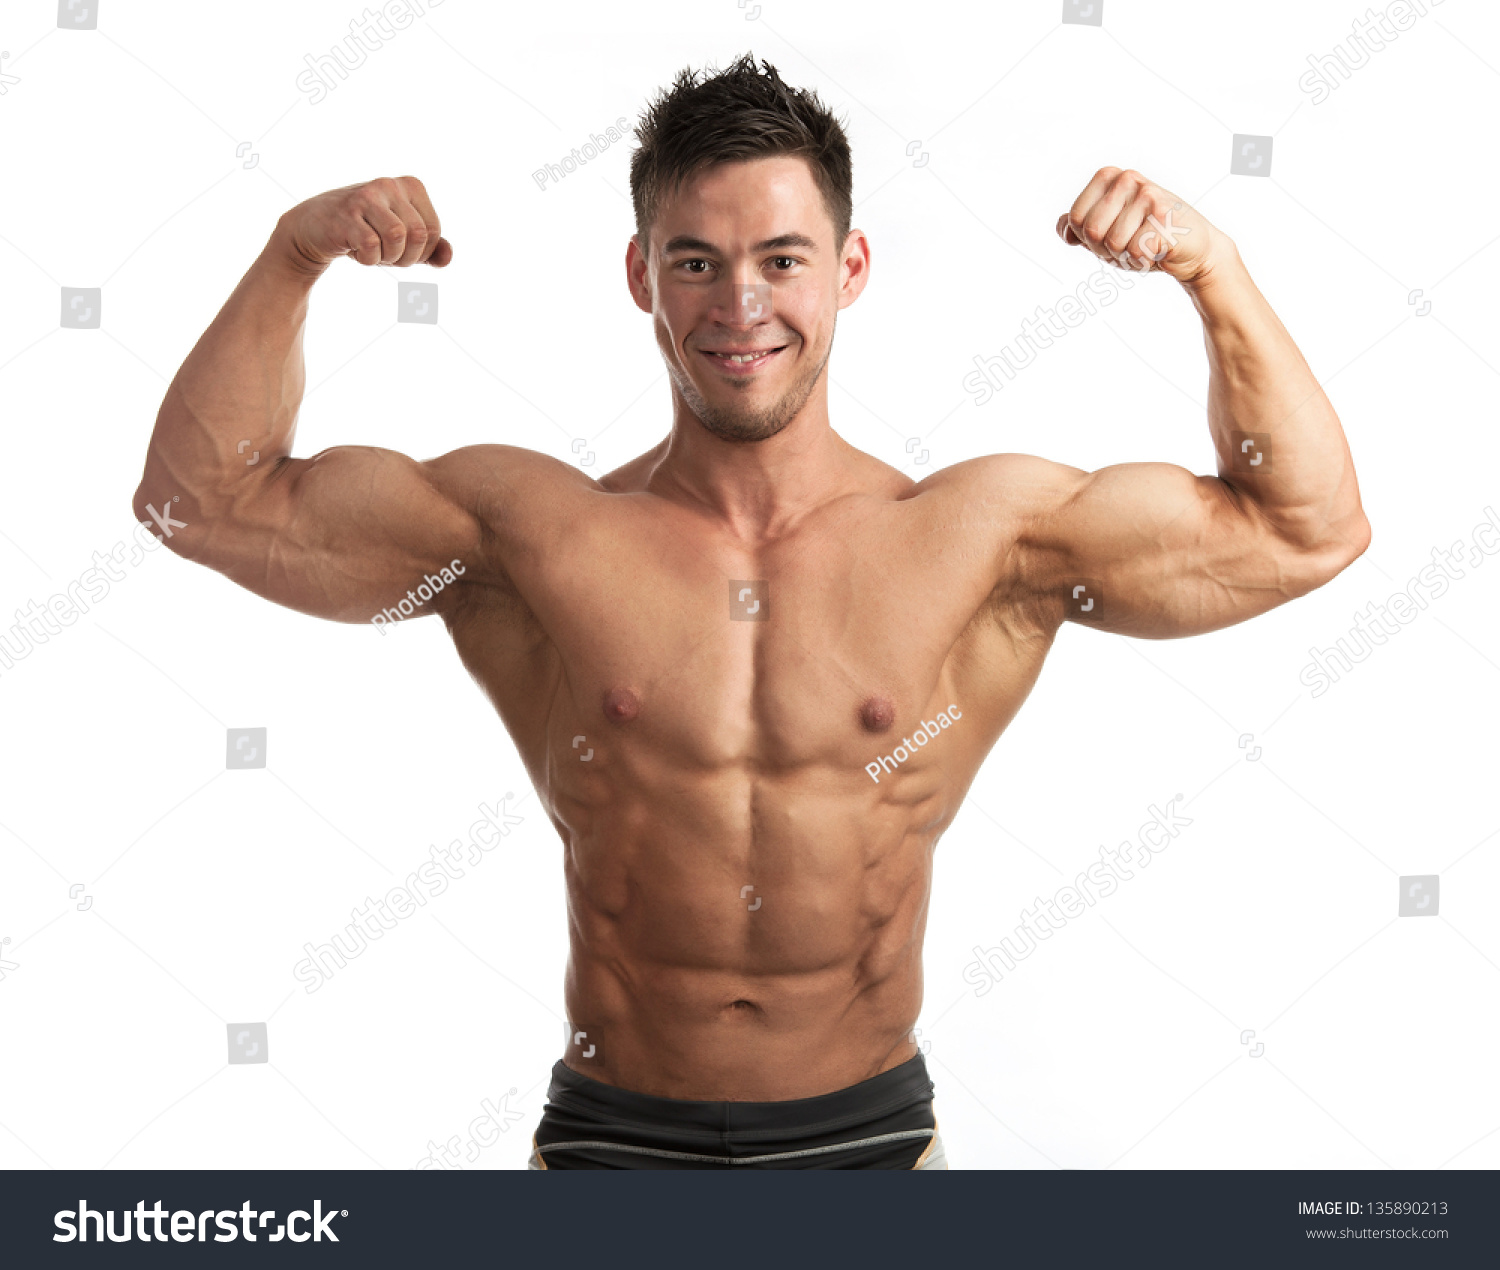 Stock Photo Waist Up Portrait Of Muscular Man Flexing His Biceps Against White Background Strong Muscles Male Arm